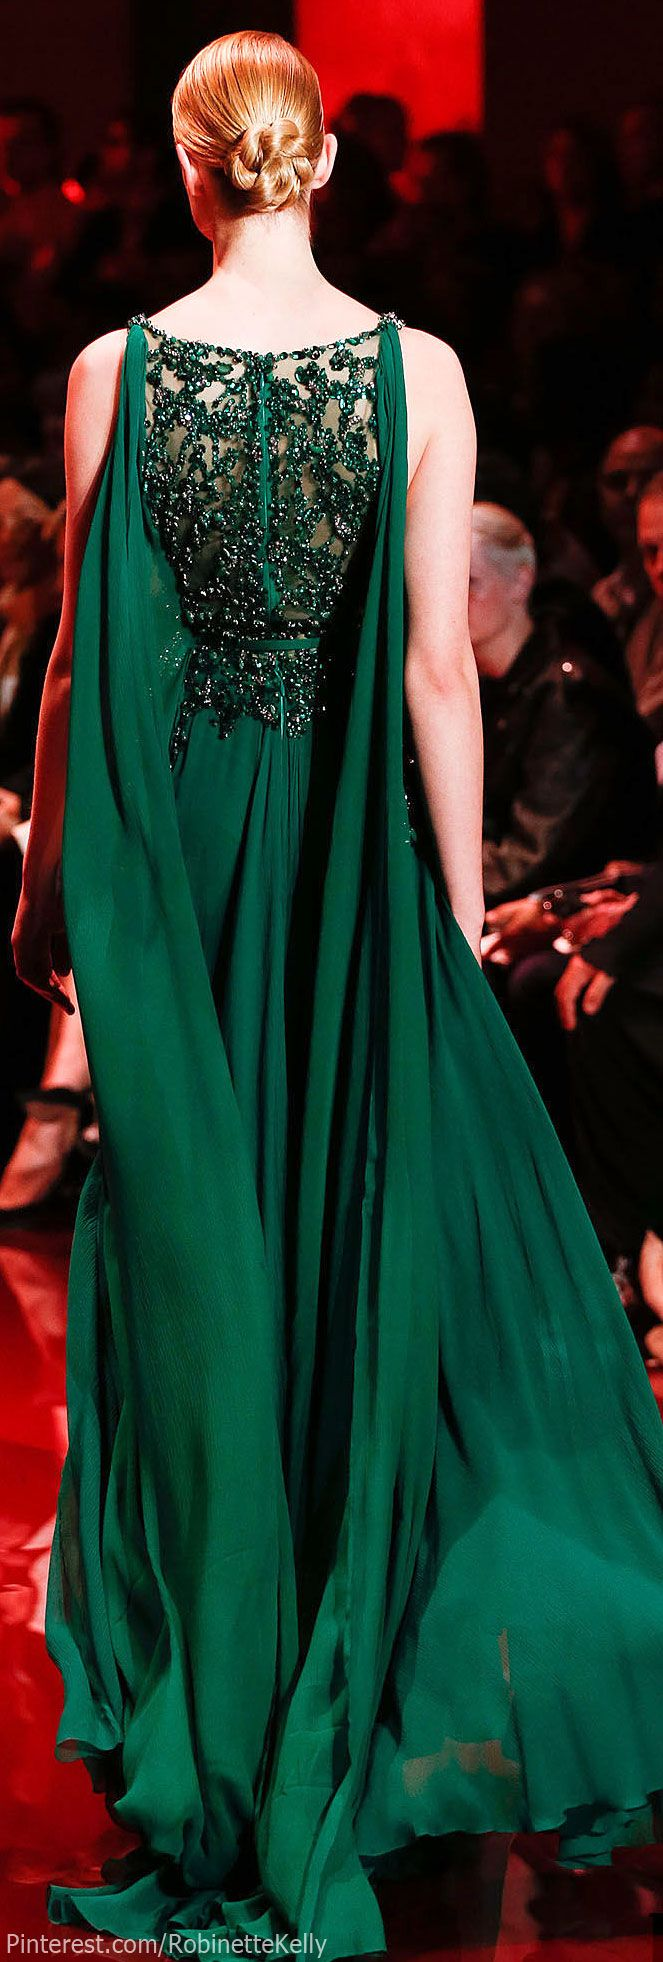 Elie Saab Haute Couture | F/W 2013 THAT COLOR THOUGH